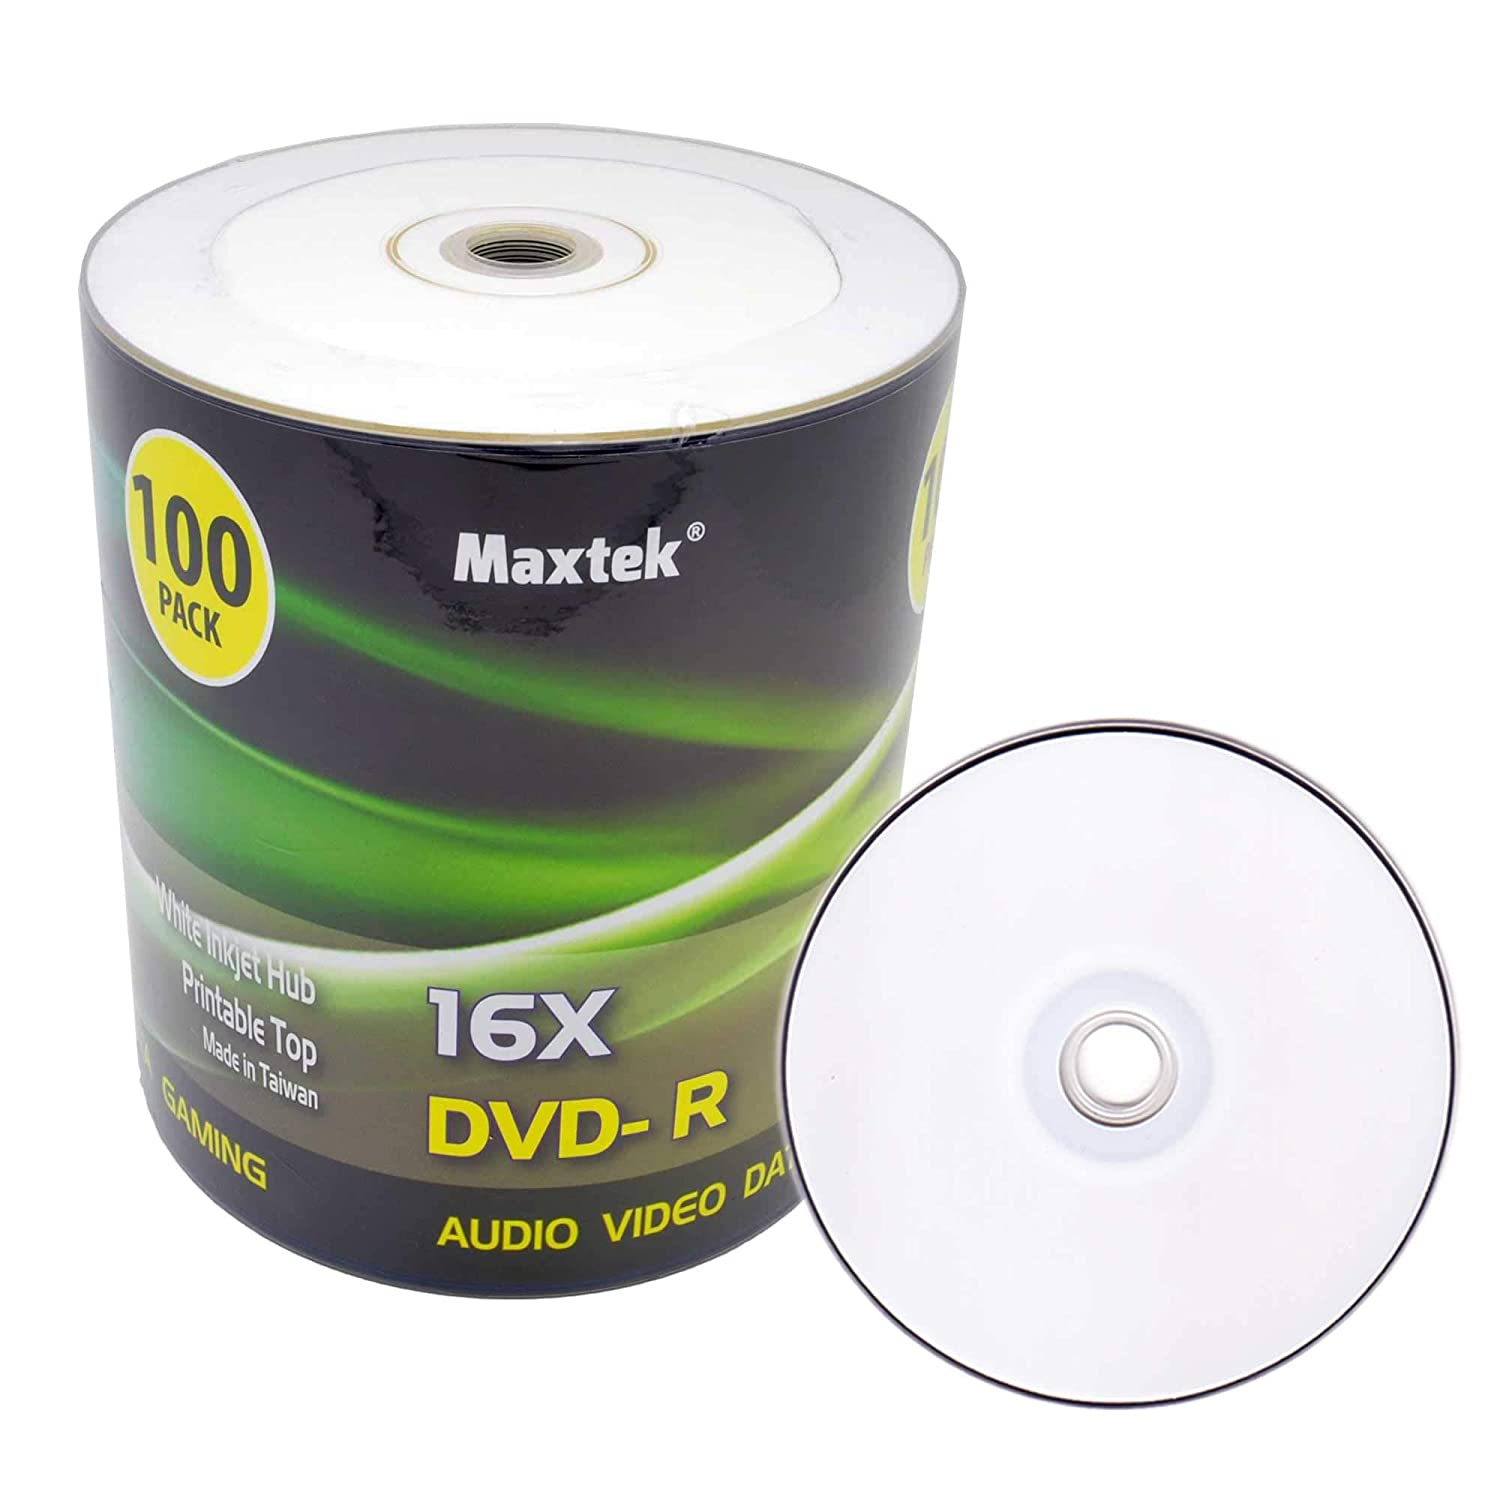 picture relating to Printable Dvd Disc identified as Maxtek Quality Quality White Inkjet HUB Printable DVD-R DVDR 16x Blank Disc, 4.7GB, 120min. 100 Computers Pack.